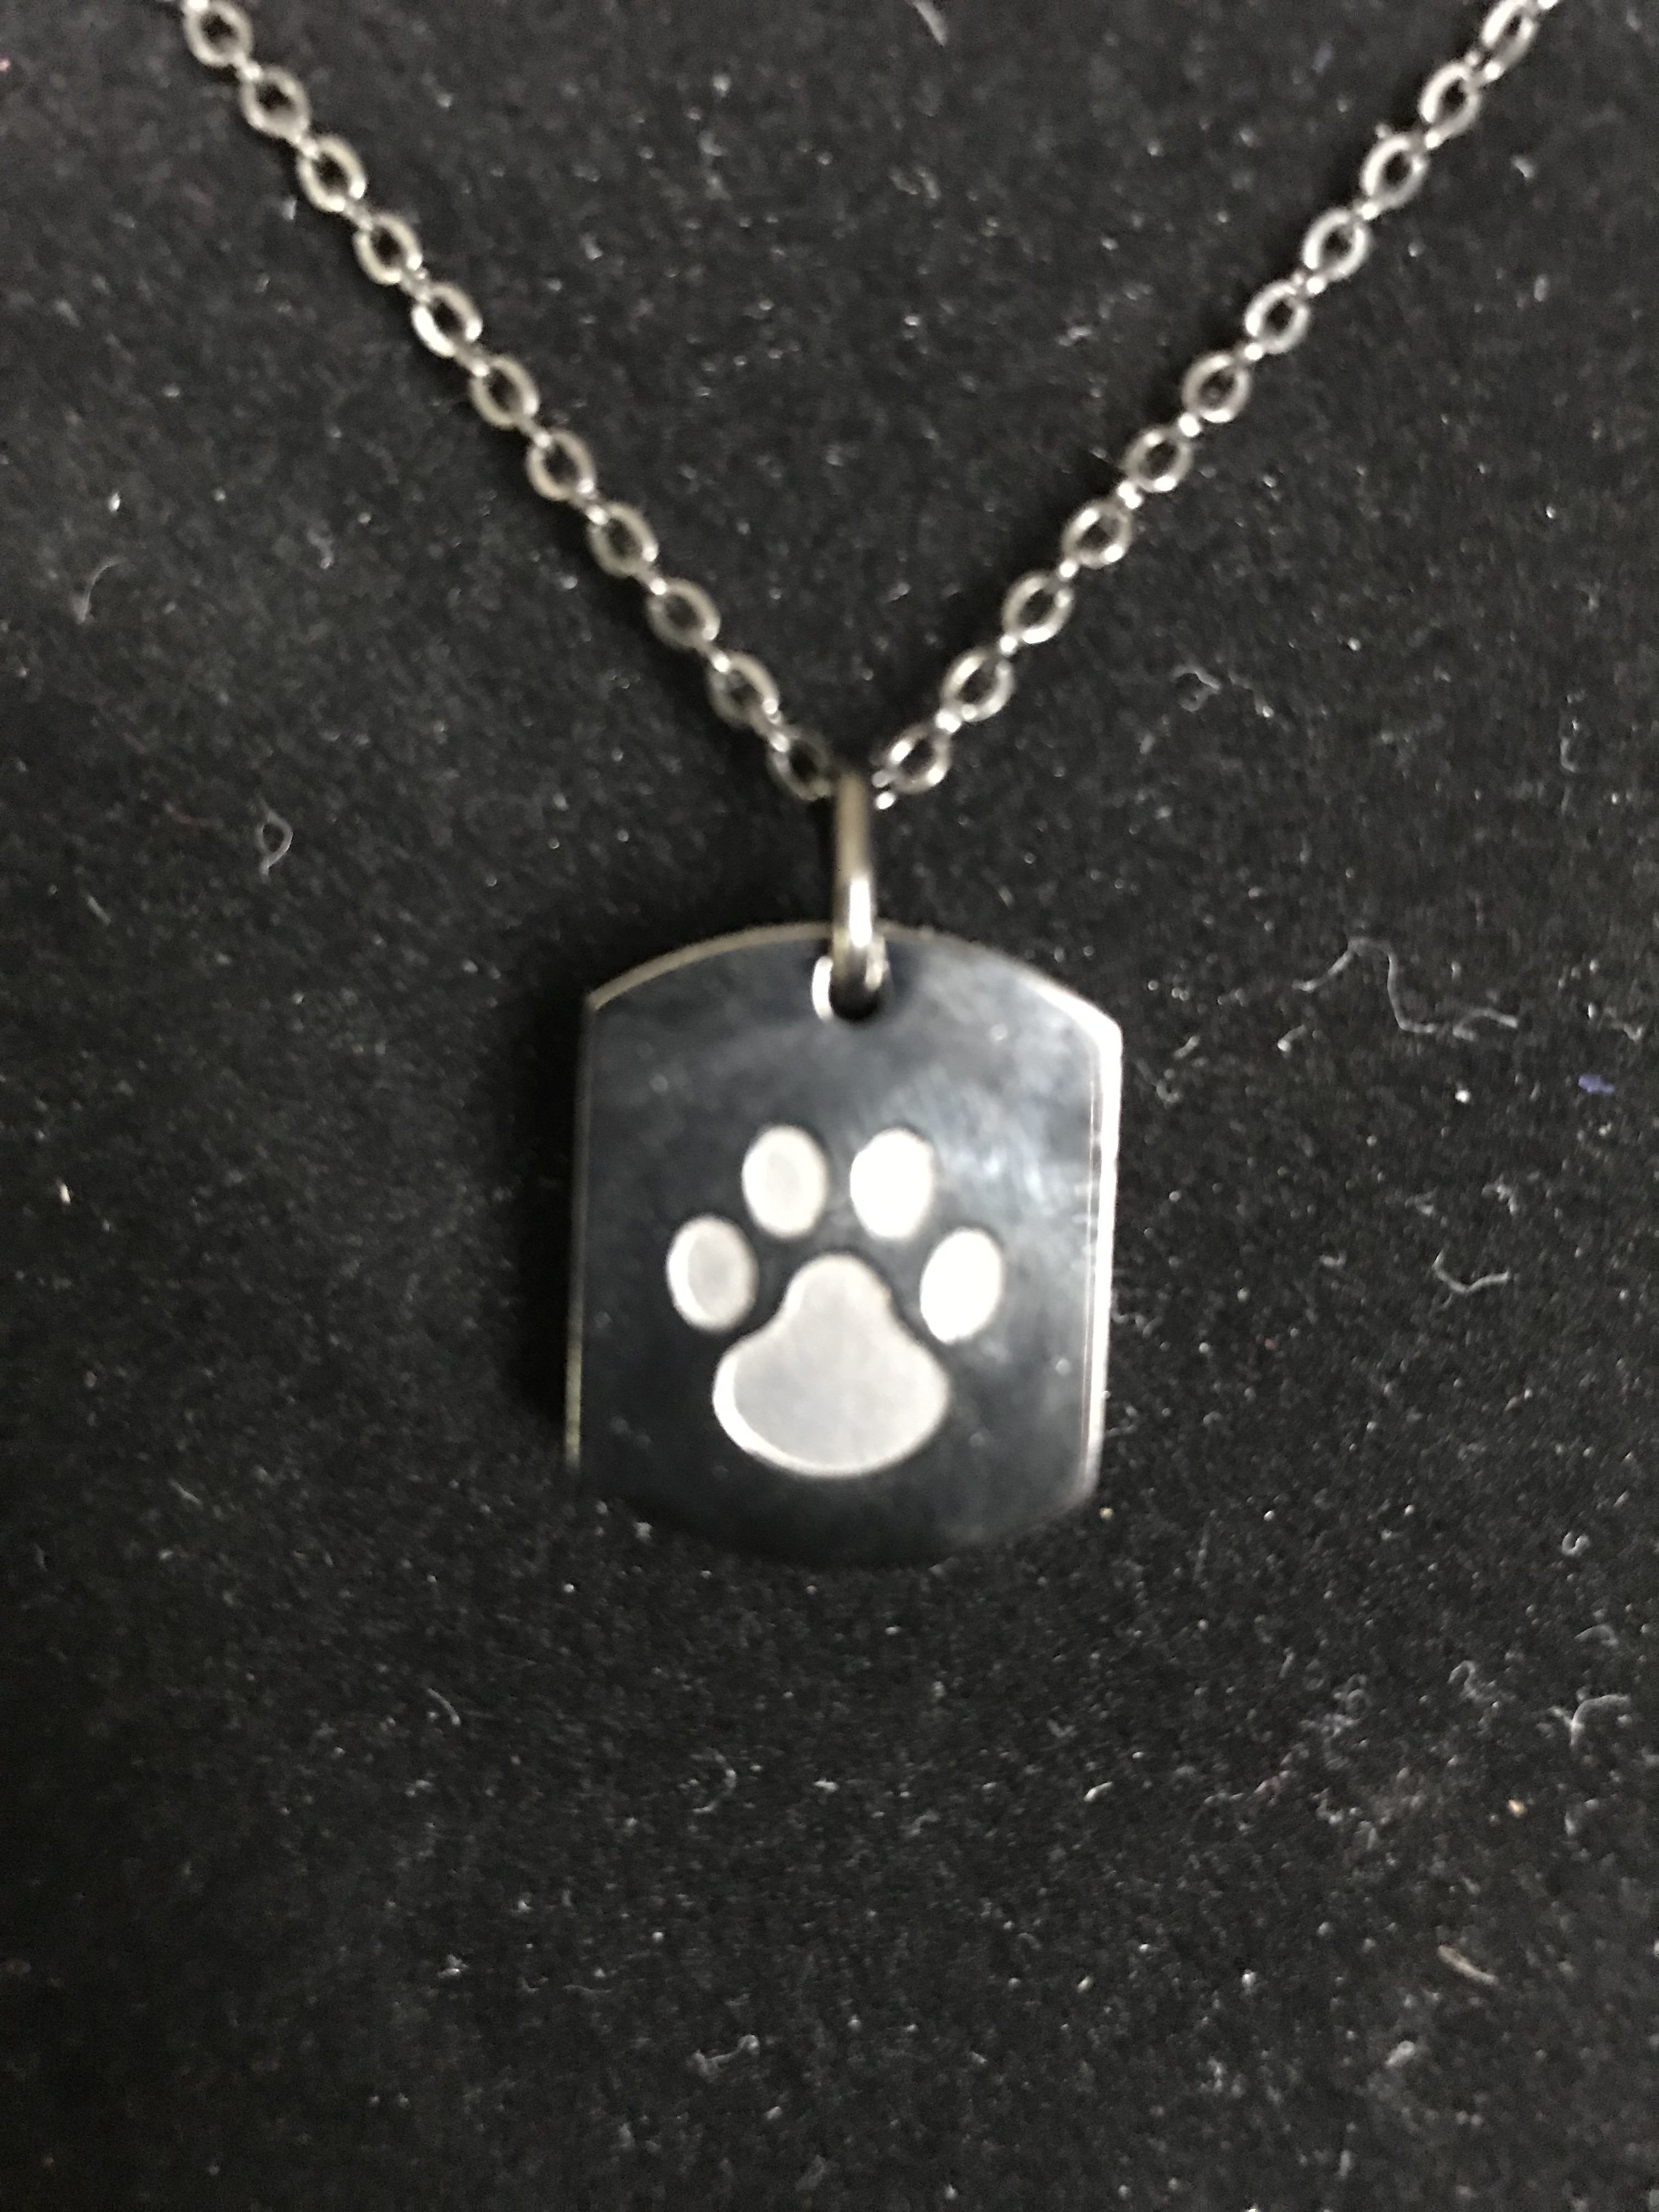 Urn for Dog Angel Puppy Cremation PENDANT or NECKLACE Holds Cremains Ashes Ash Locket Bone Pawprints In Memory of Beloved Pet Loss Memorial